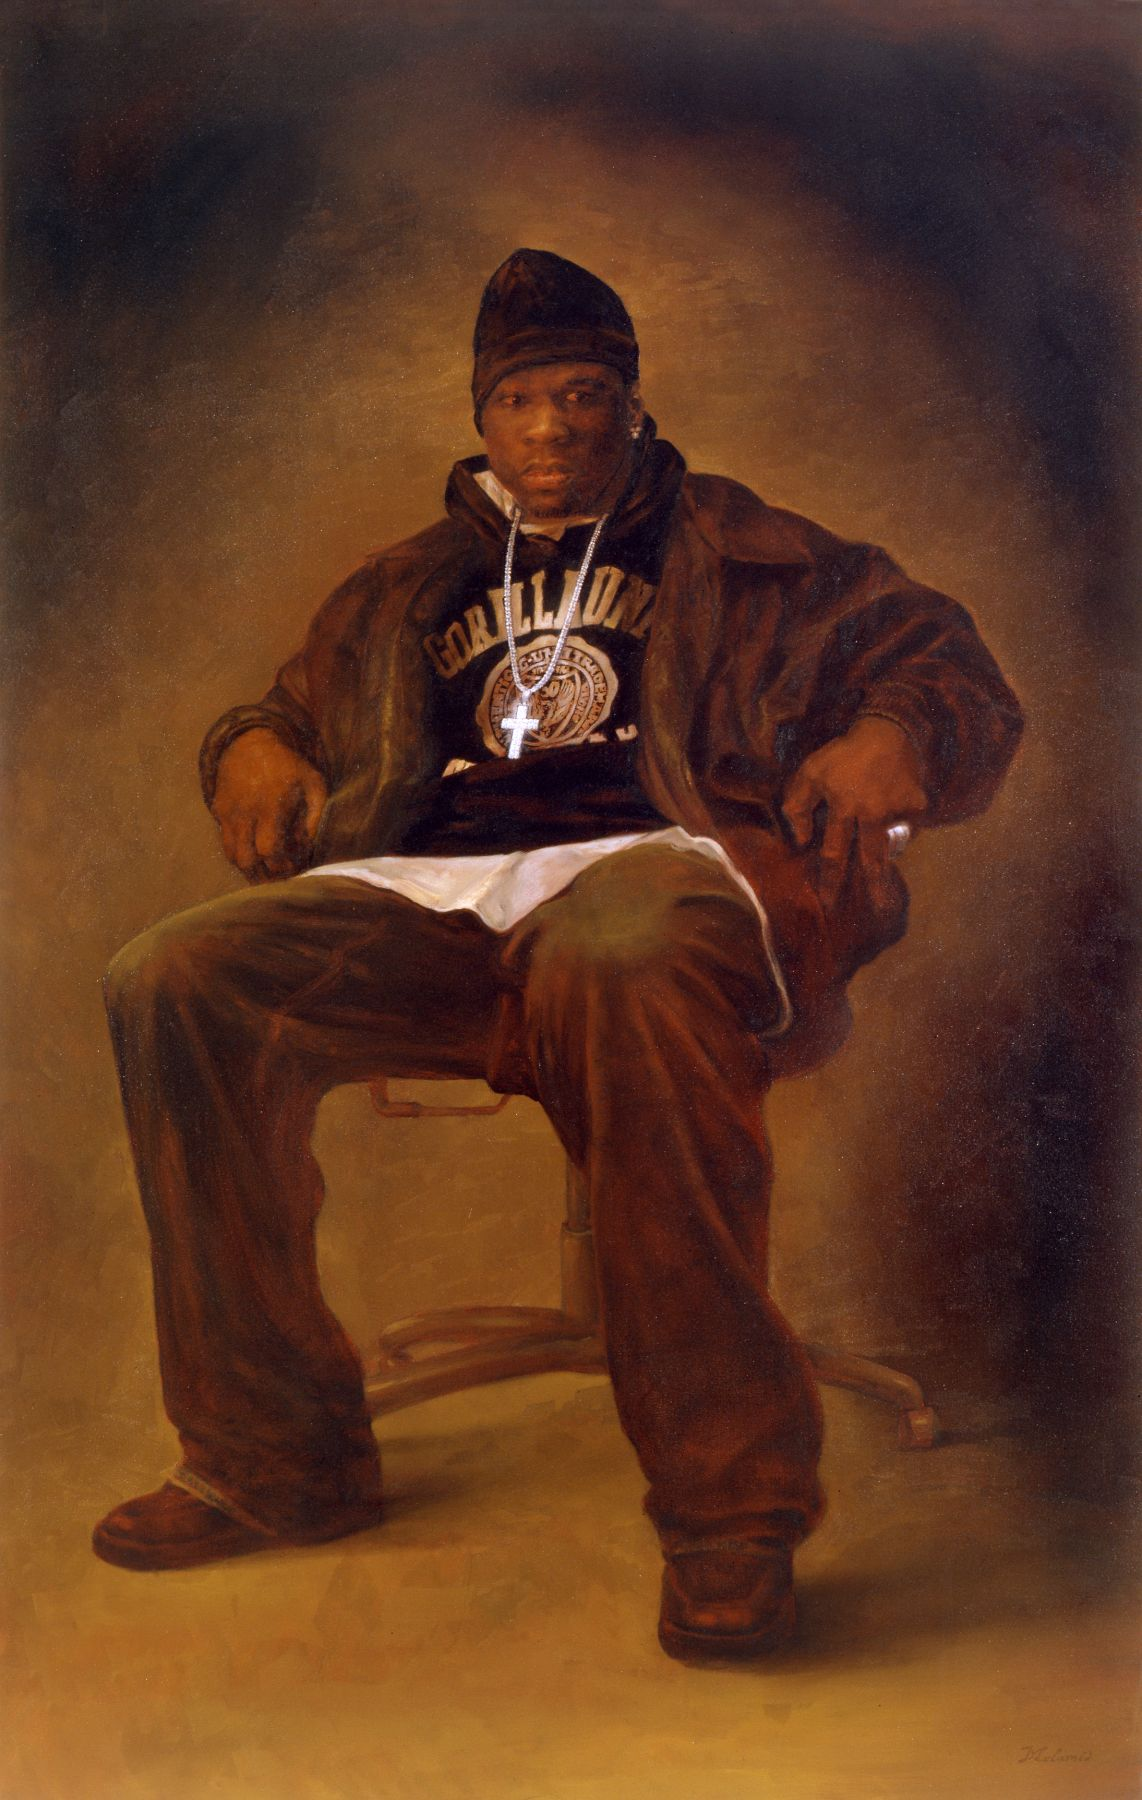 Alex Melamid, 50 Cent, 2005, oil on canvas, 82 x 52 inches